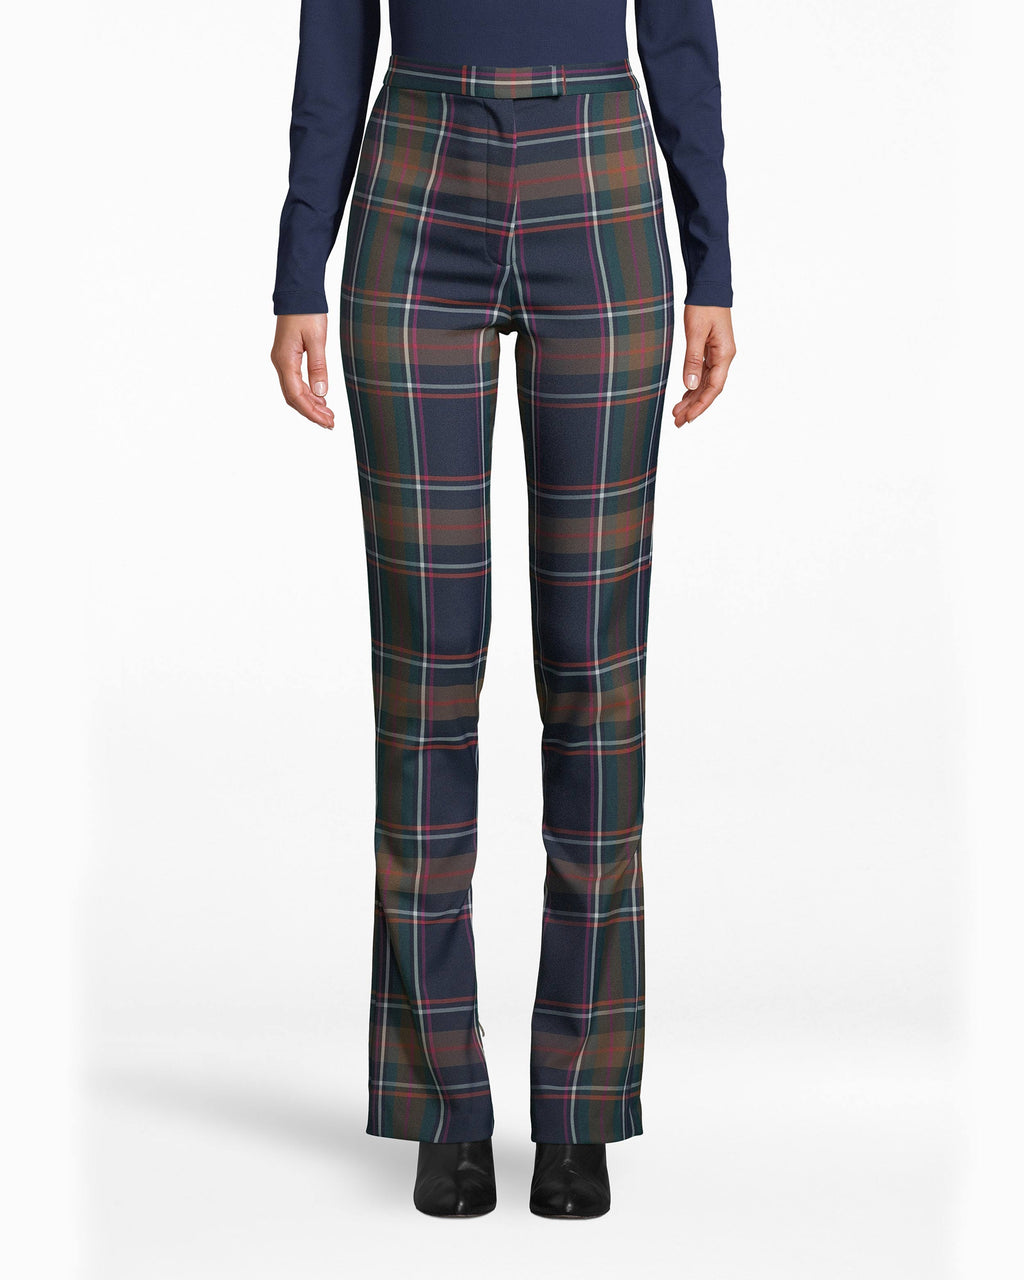 BH10496 - BLUEWAY PLAID PANT - bottoms - pants - Plaid is back. Embrace it in these major figure-flattering pants. The waistline hits high, and the hem falls below the ankles.